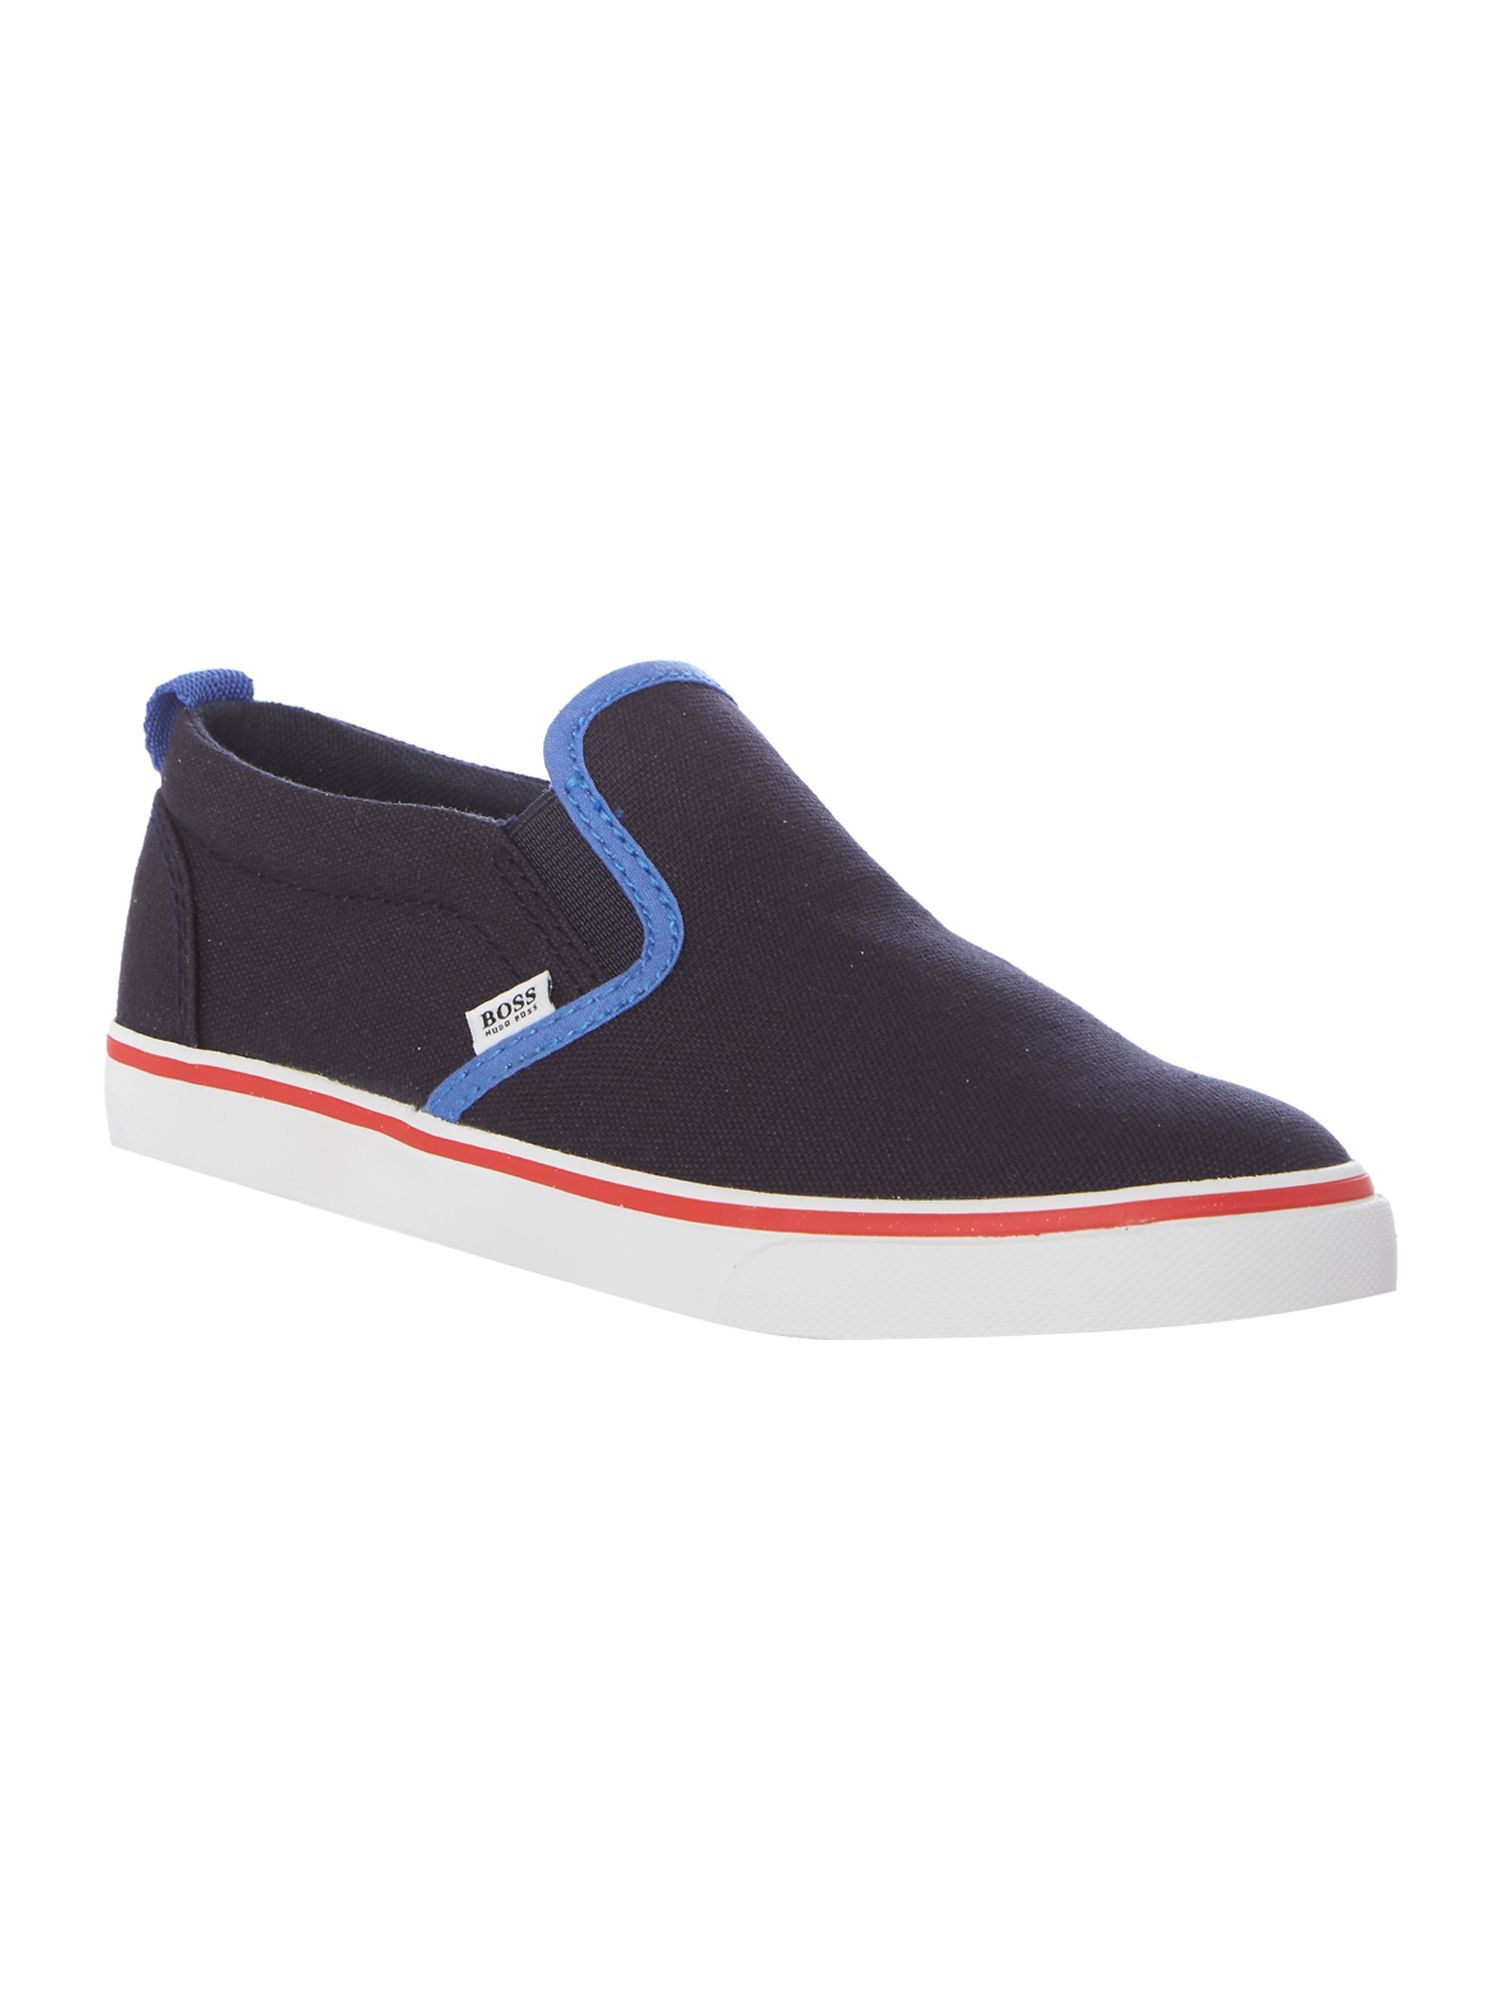 Hugo Boss Boys Canvas Trainers, Navy | Hugo boss, Trainers, Navy